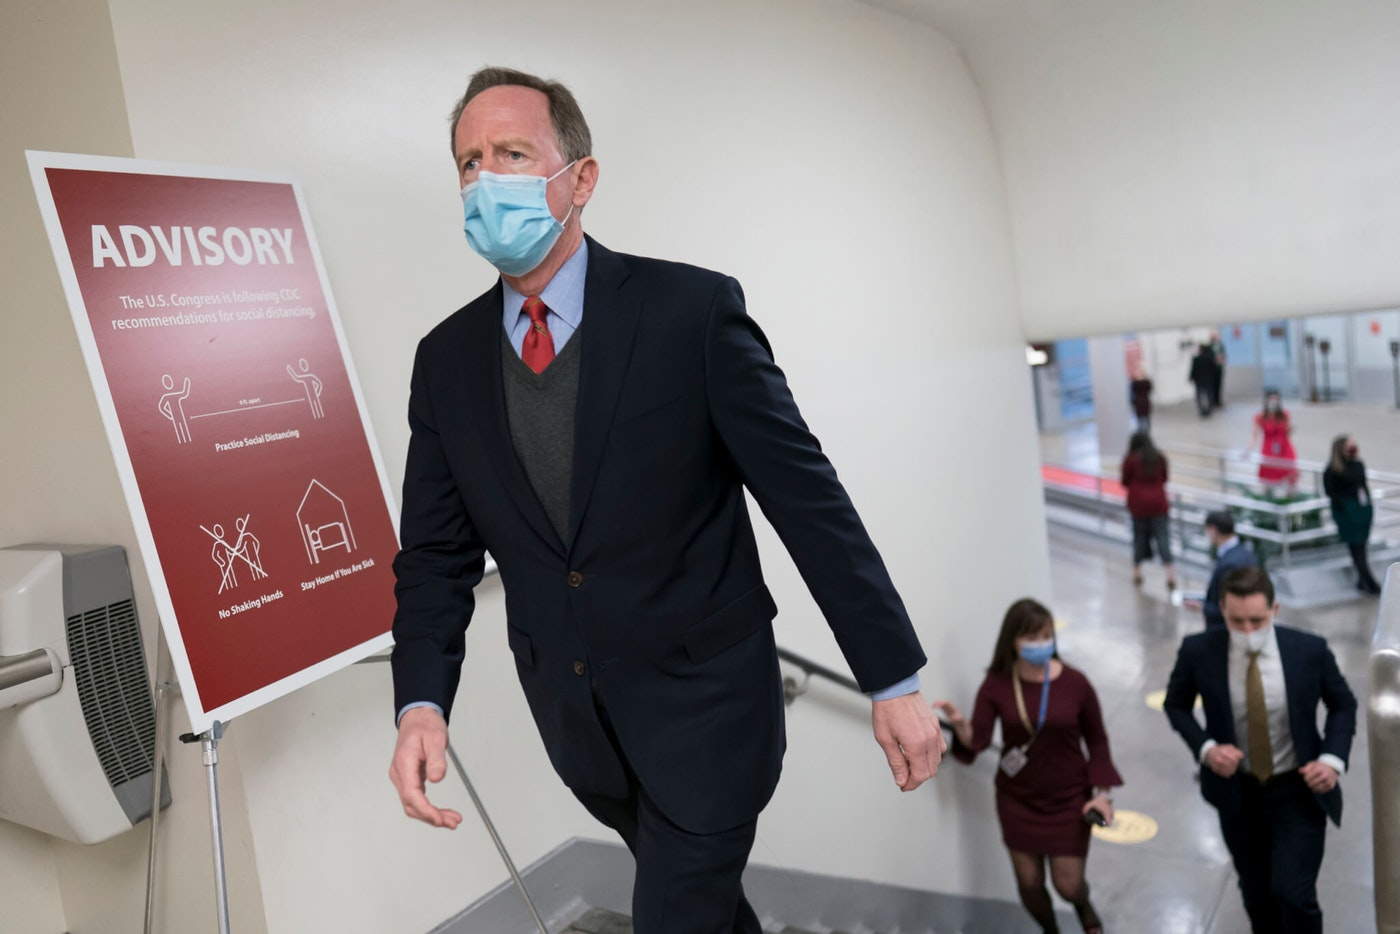 Sen. Pat Toomey, R-Pa., arrives for votes on President Joe Biden's cabinet nominees, at the Capitol in Washington, Thursday, Feb. 25, 2021. (AP Photo/J. Scott Applewhite)